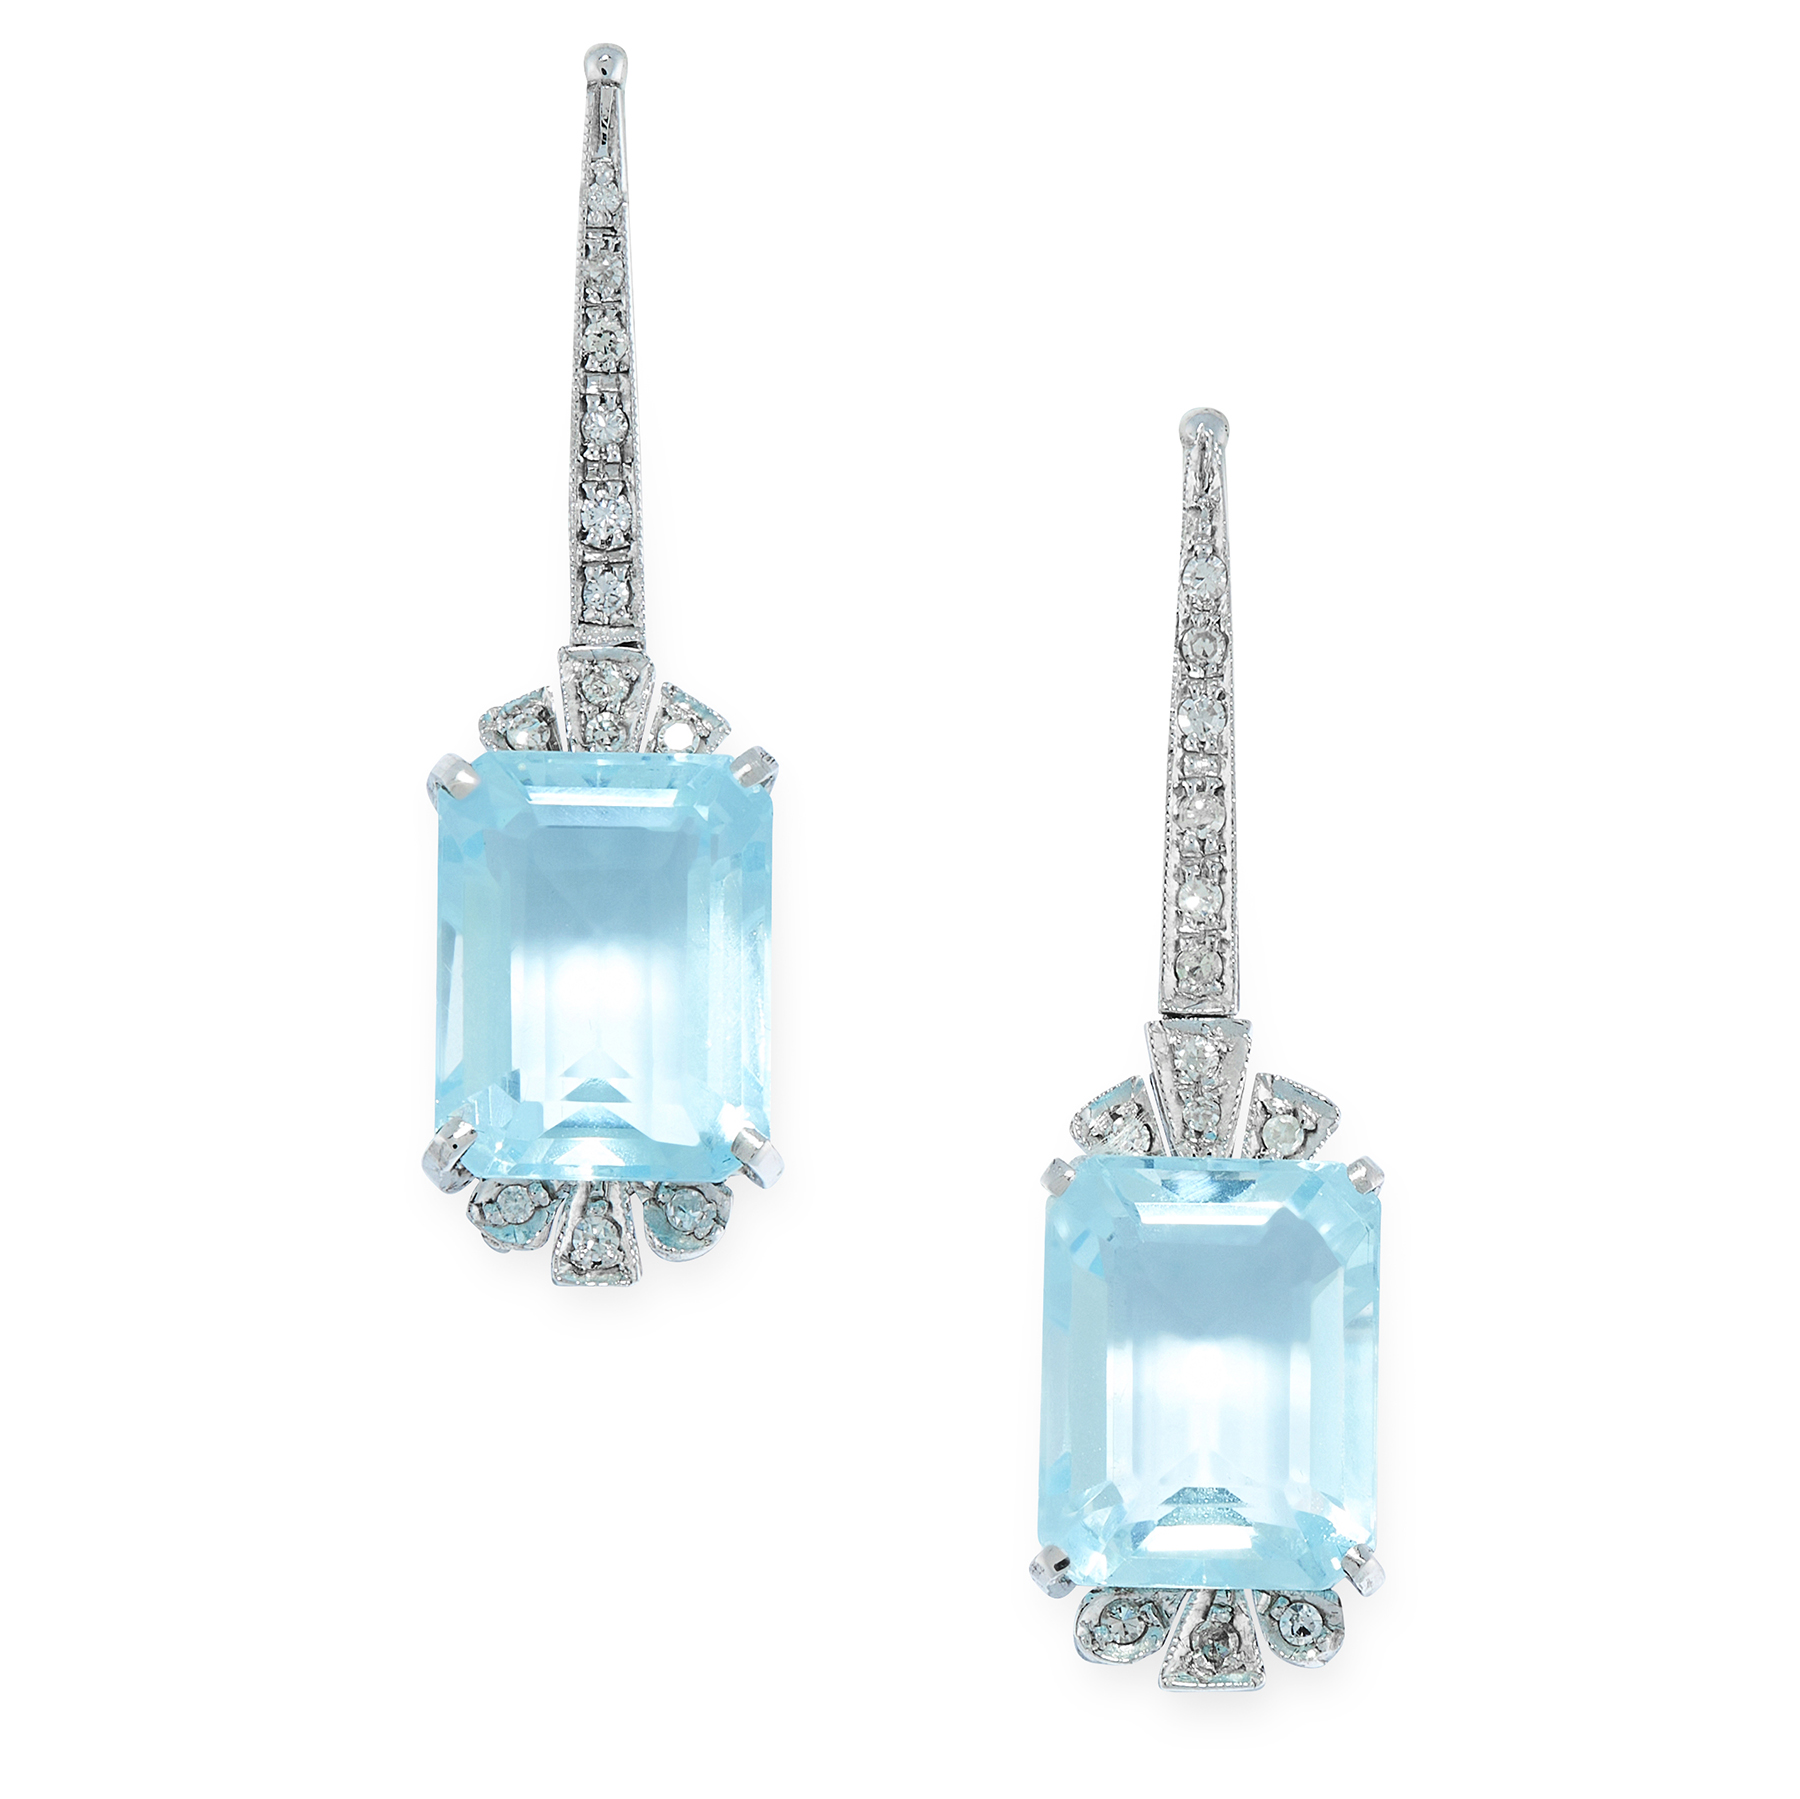 A PAIR OF BLUE TOPAZ AND DIAMOND EARRINGS in white gold, in Art Deco design, the tapering body set